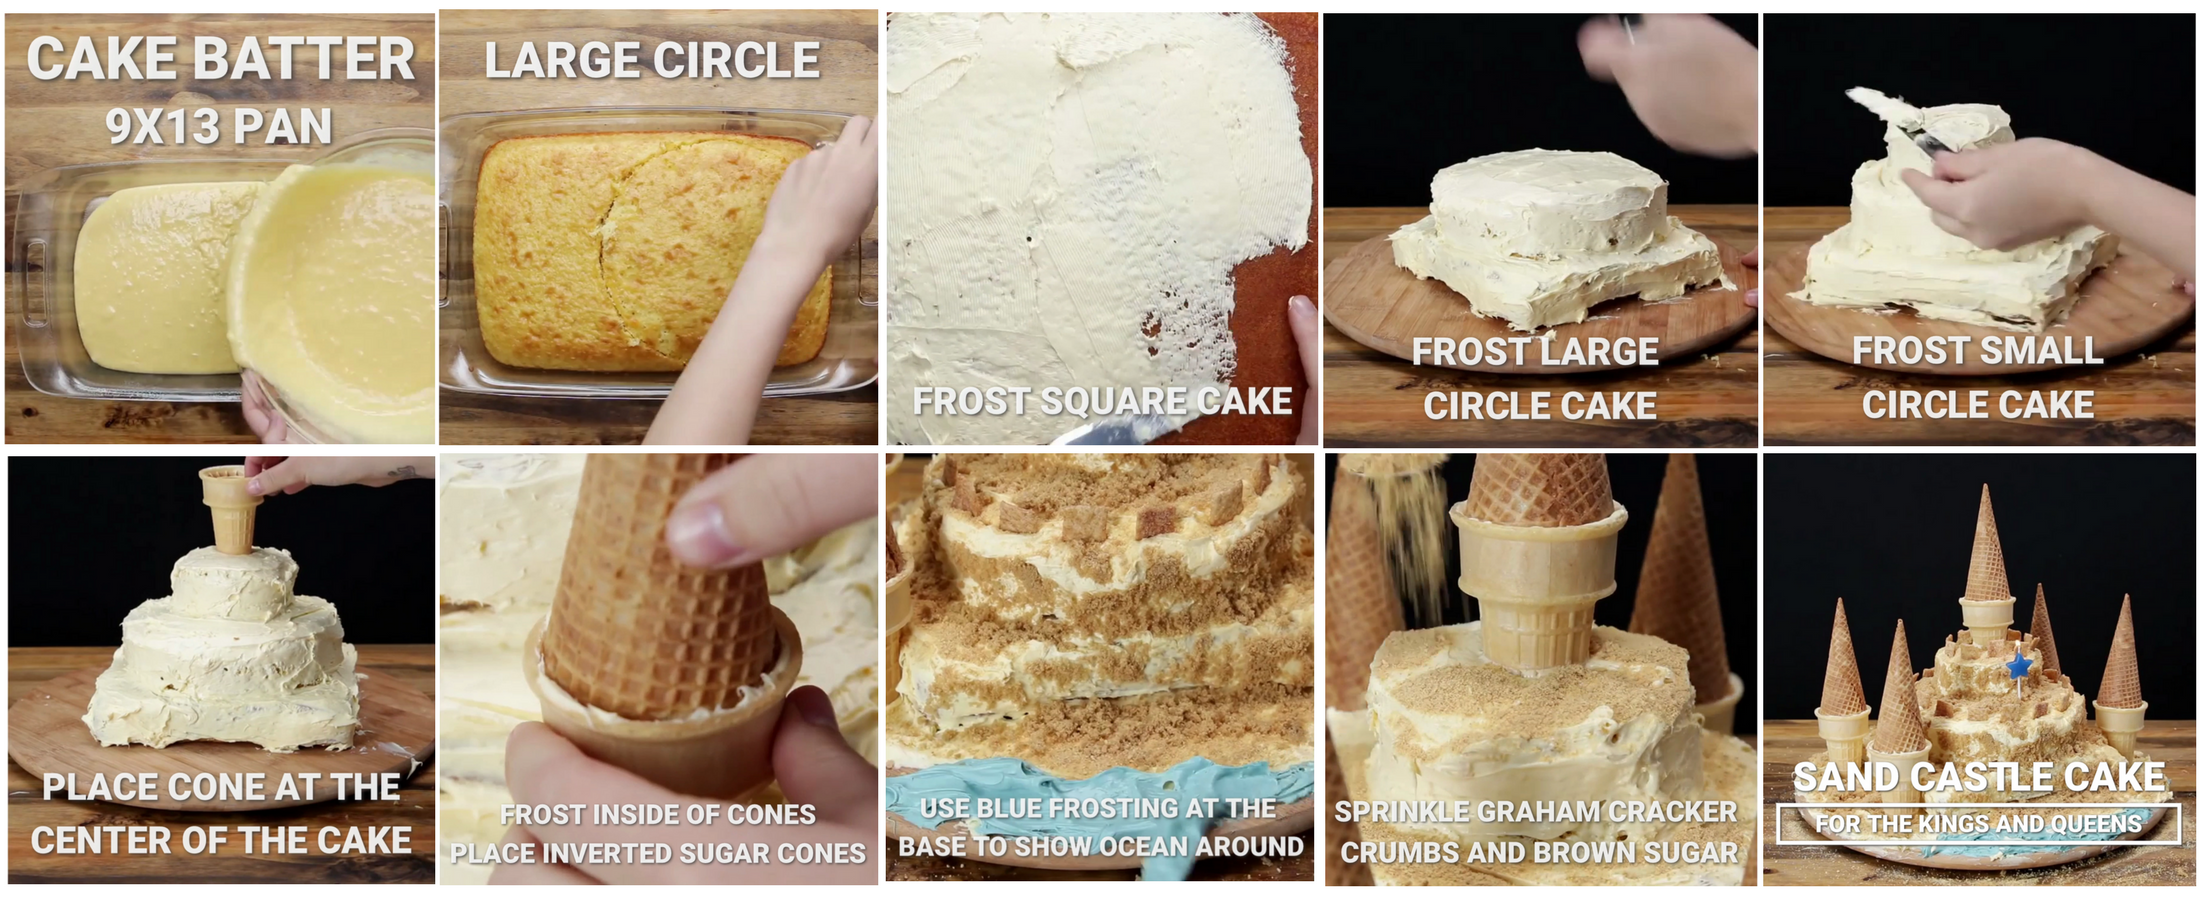 Here are the 8 important parts of Tasty's Sand Castle Cake video